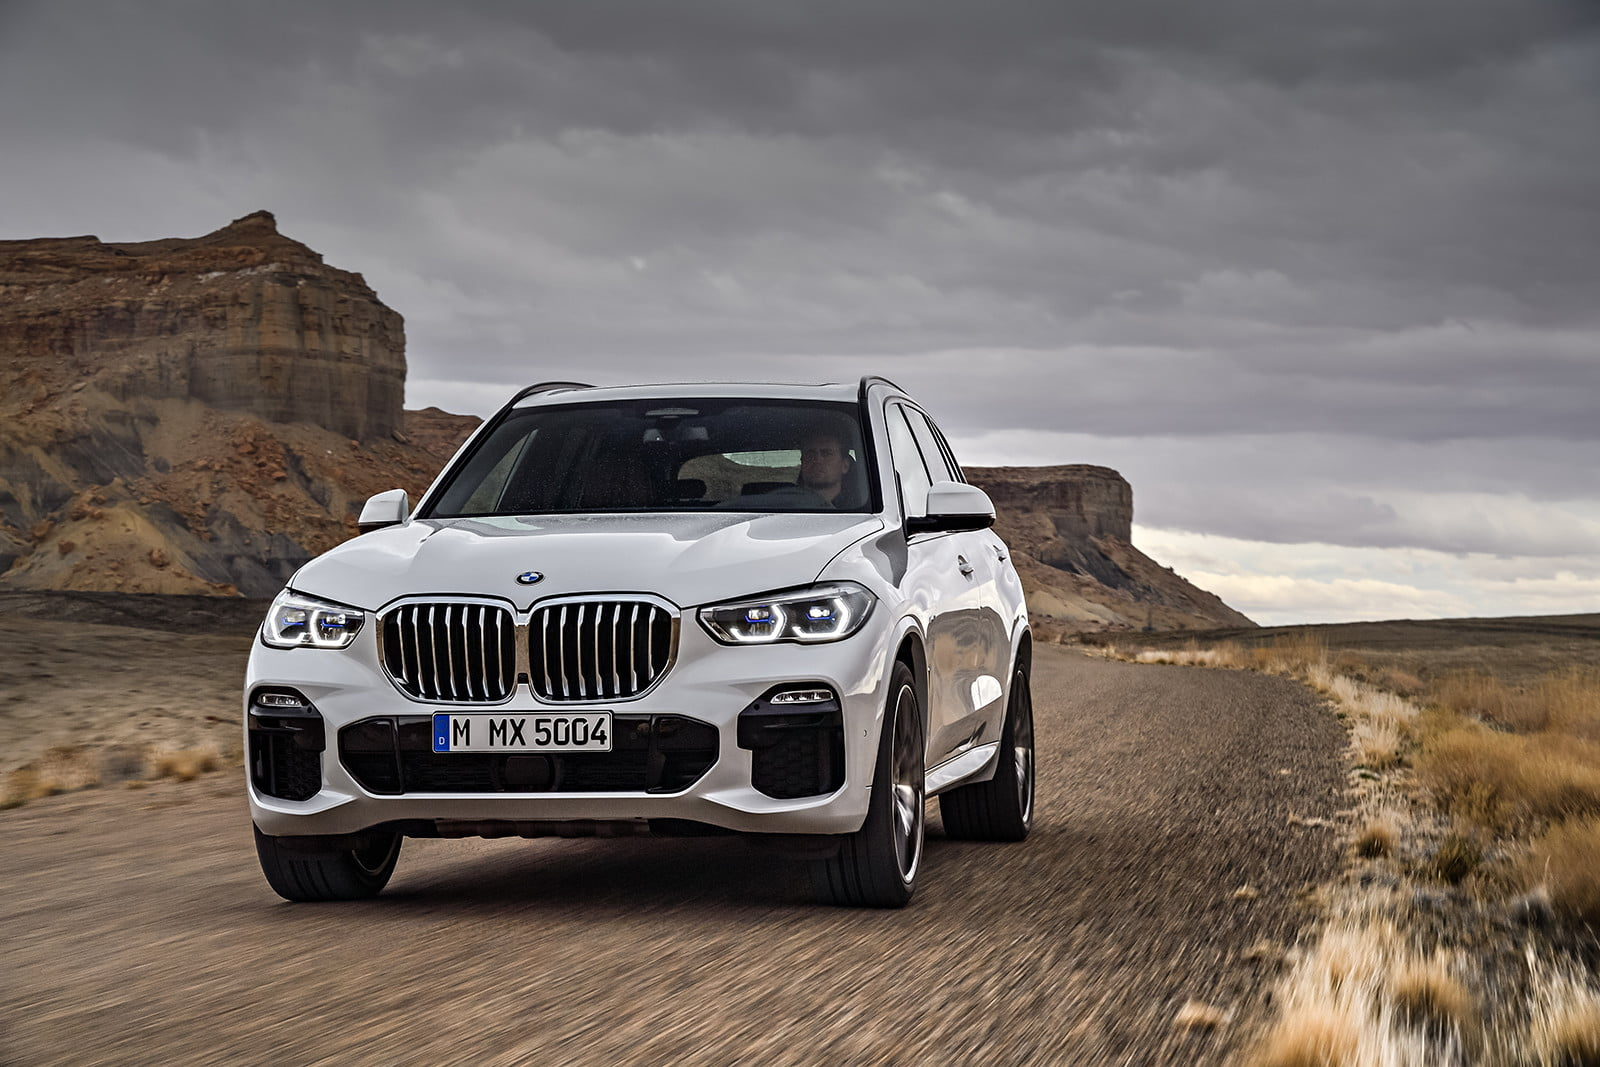 The 2019 Bmw X5 Is Here To Replace That Aging Family Suv